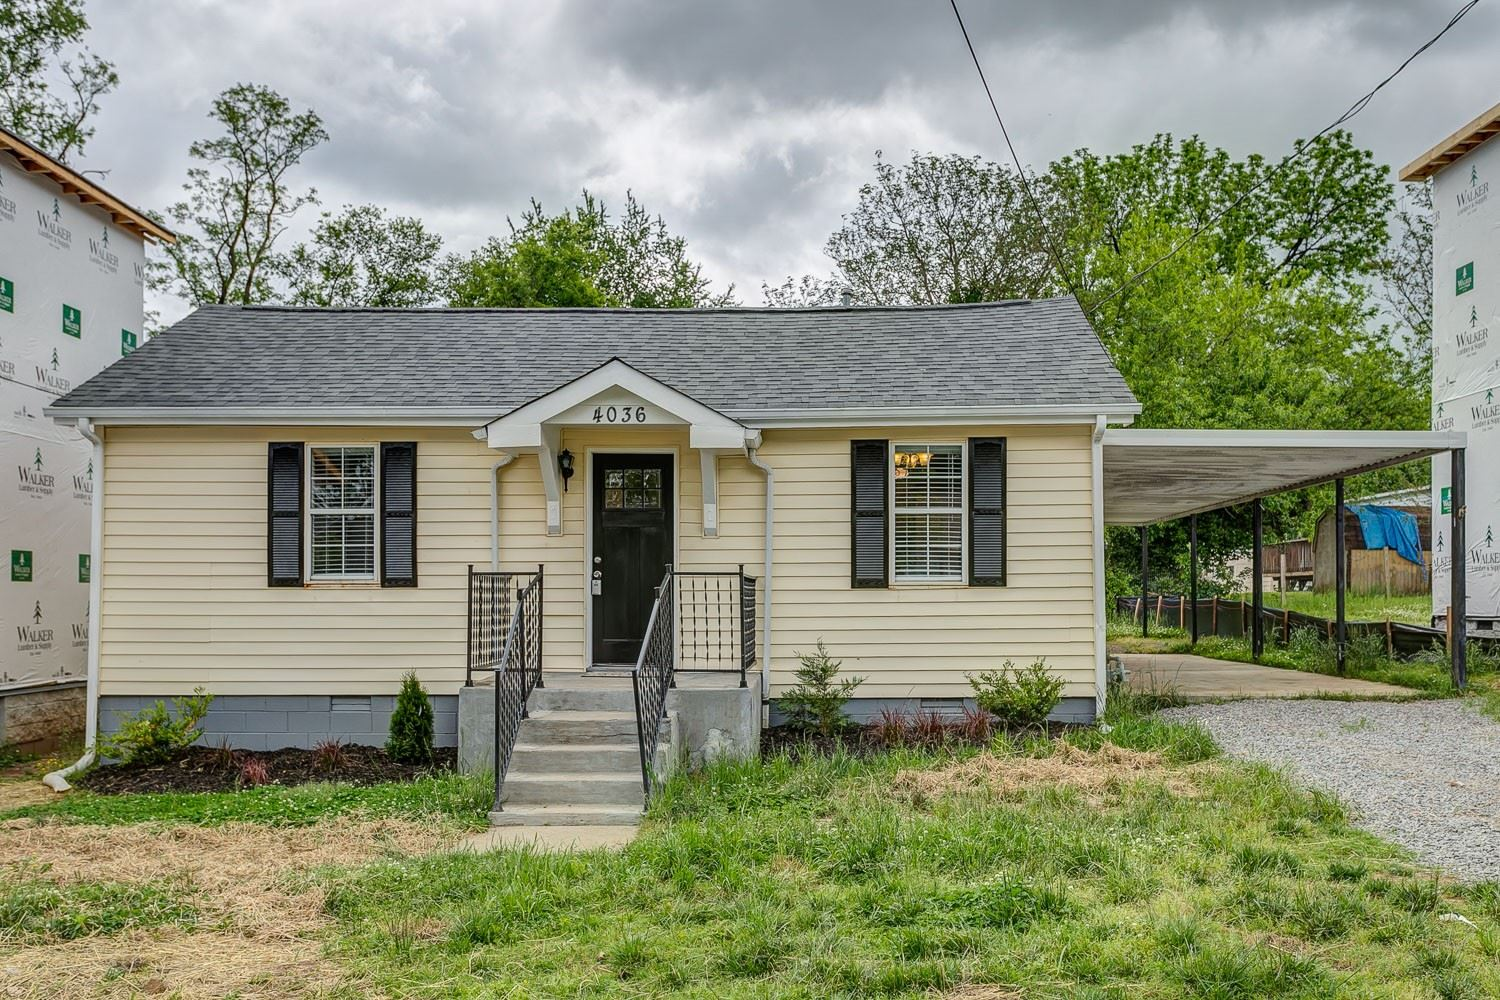 4036 Church St, Old Hickory, TN 37138 - MLS#: 2152326